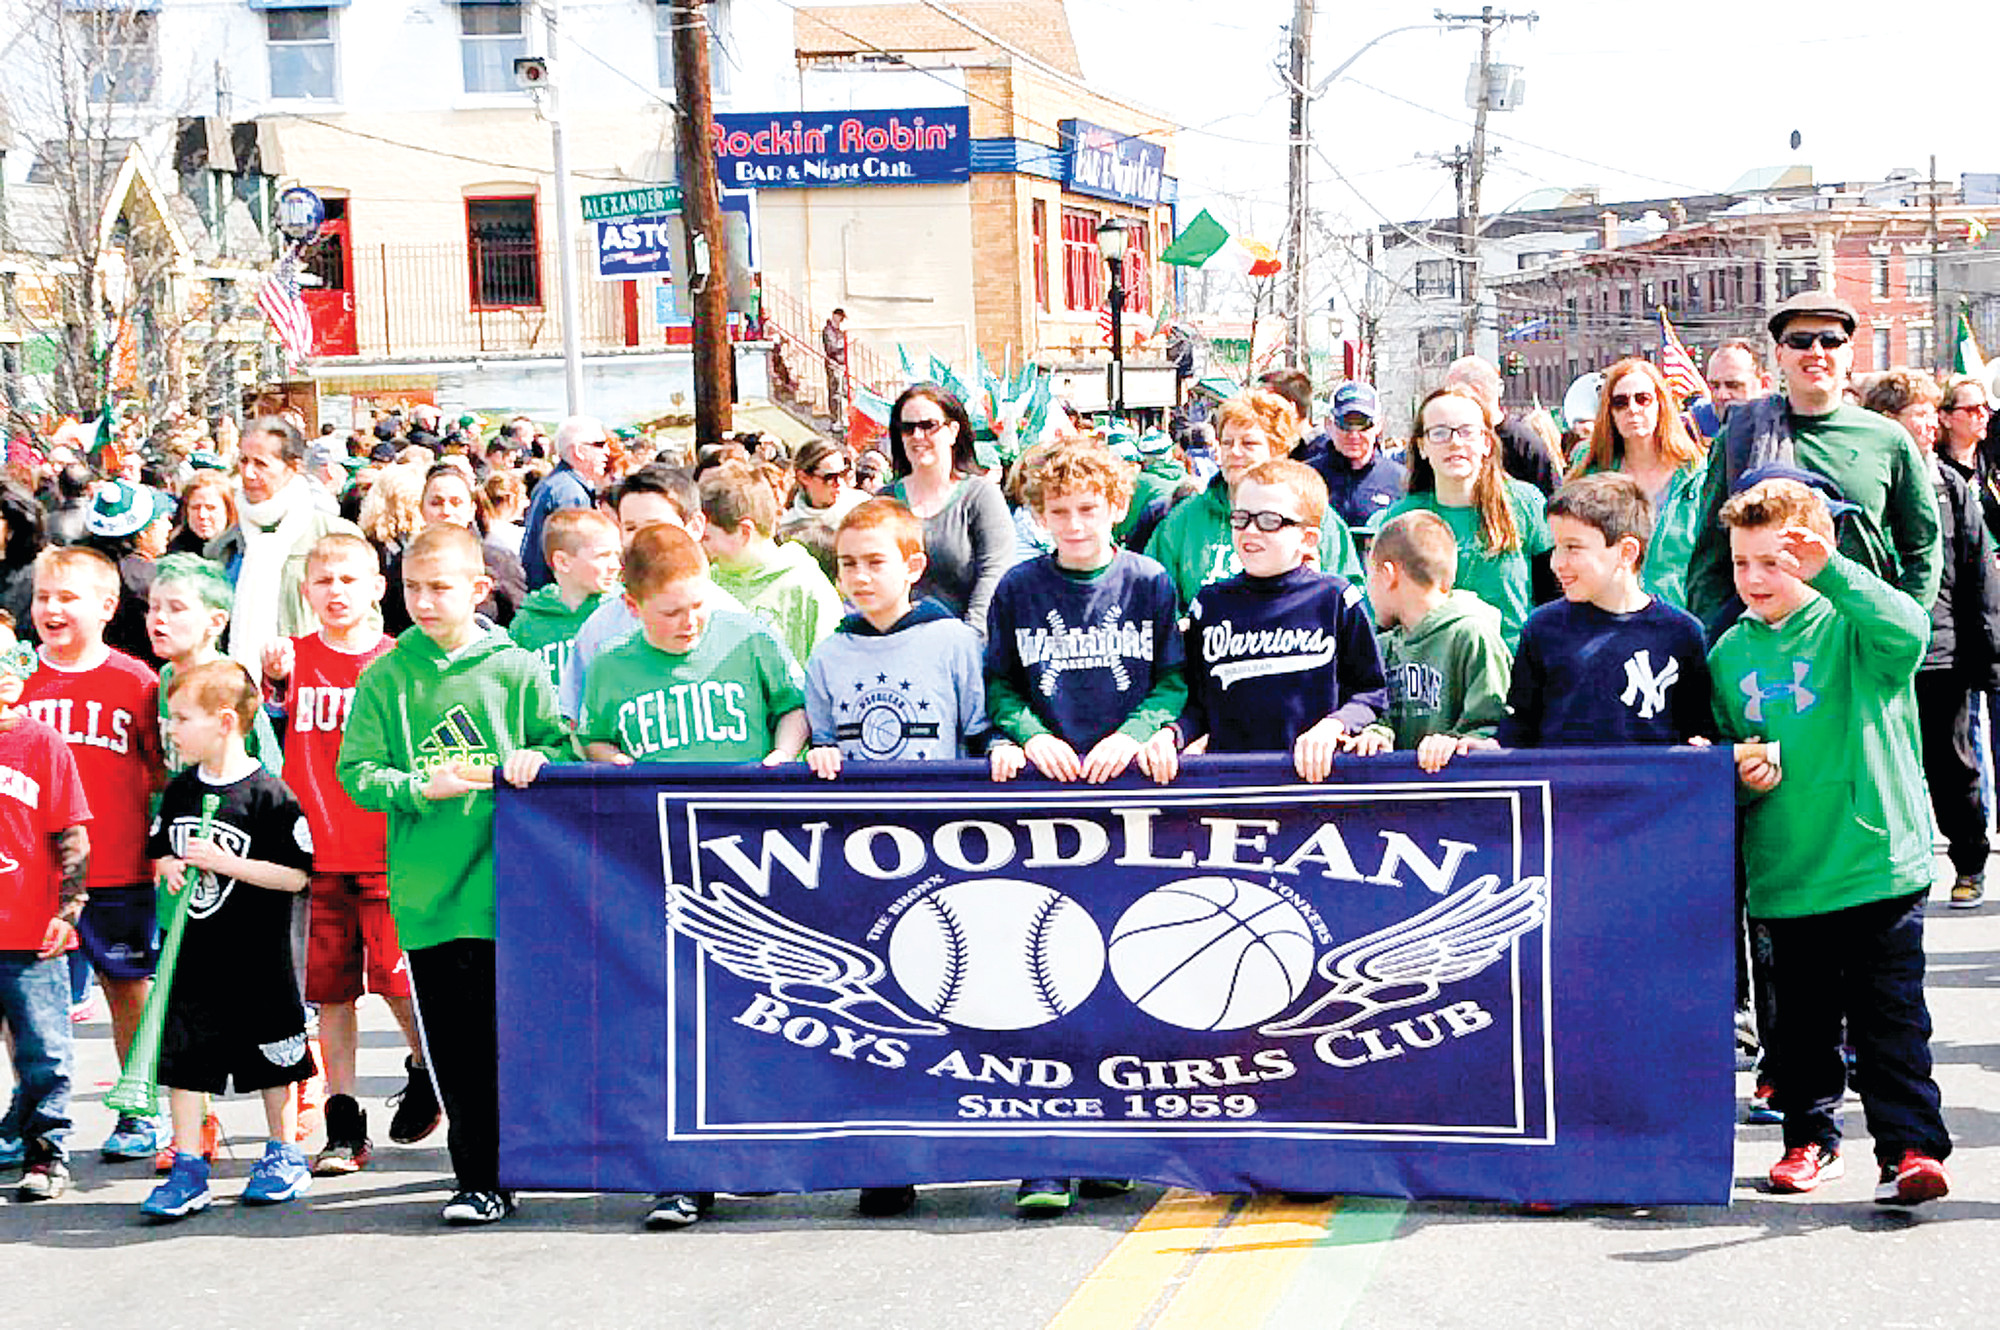 Boisterous kids from the Woodlean Boys and Girls club enjoyed the march.